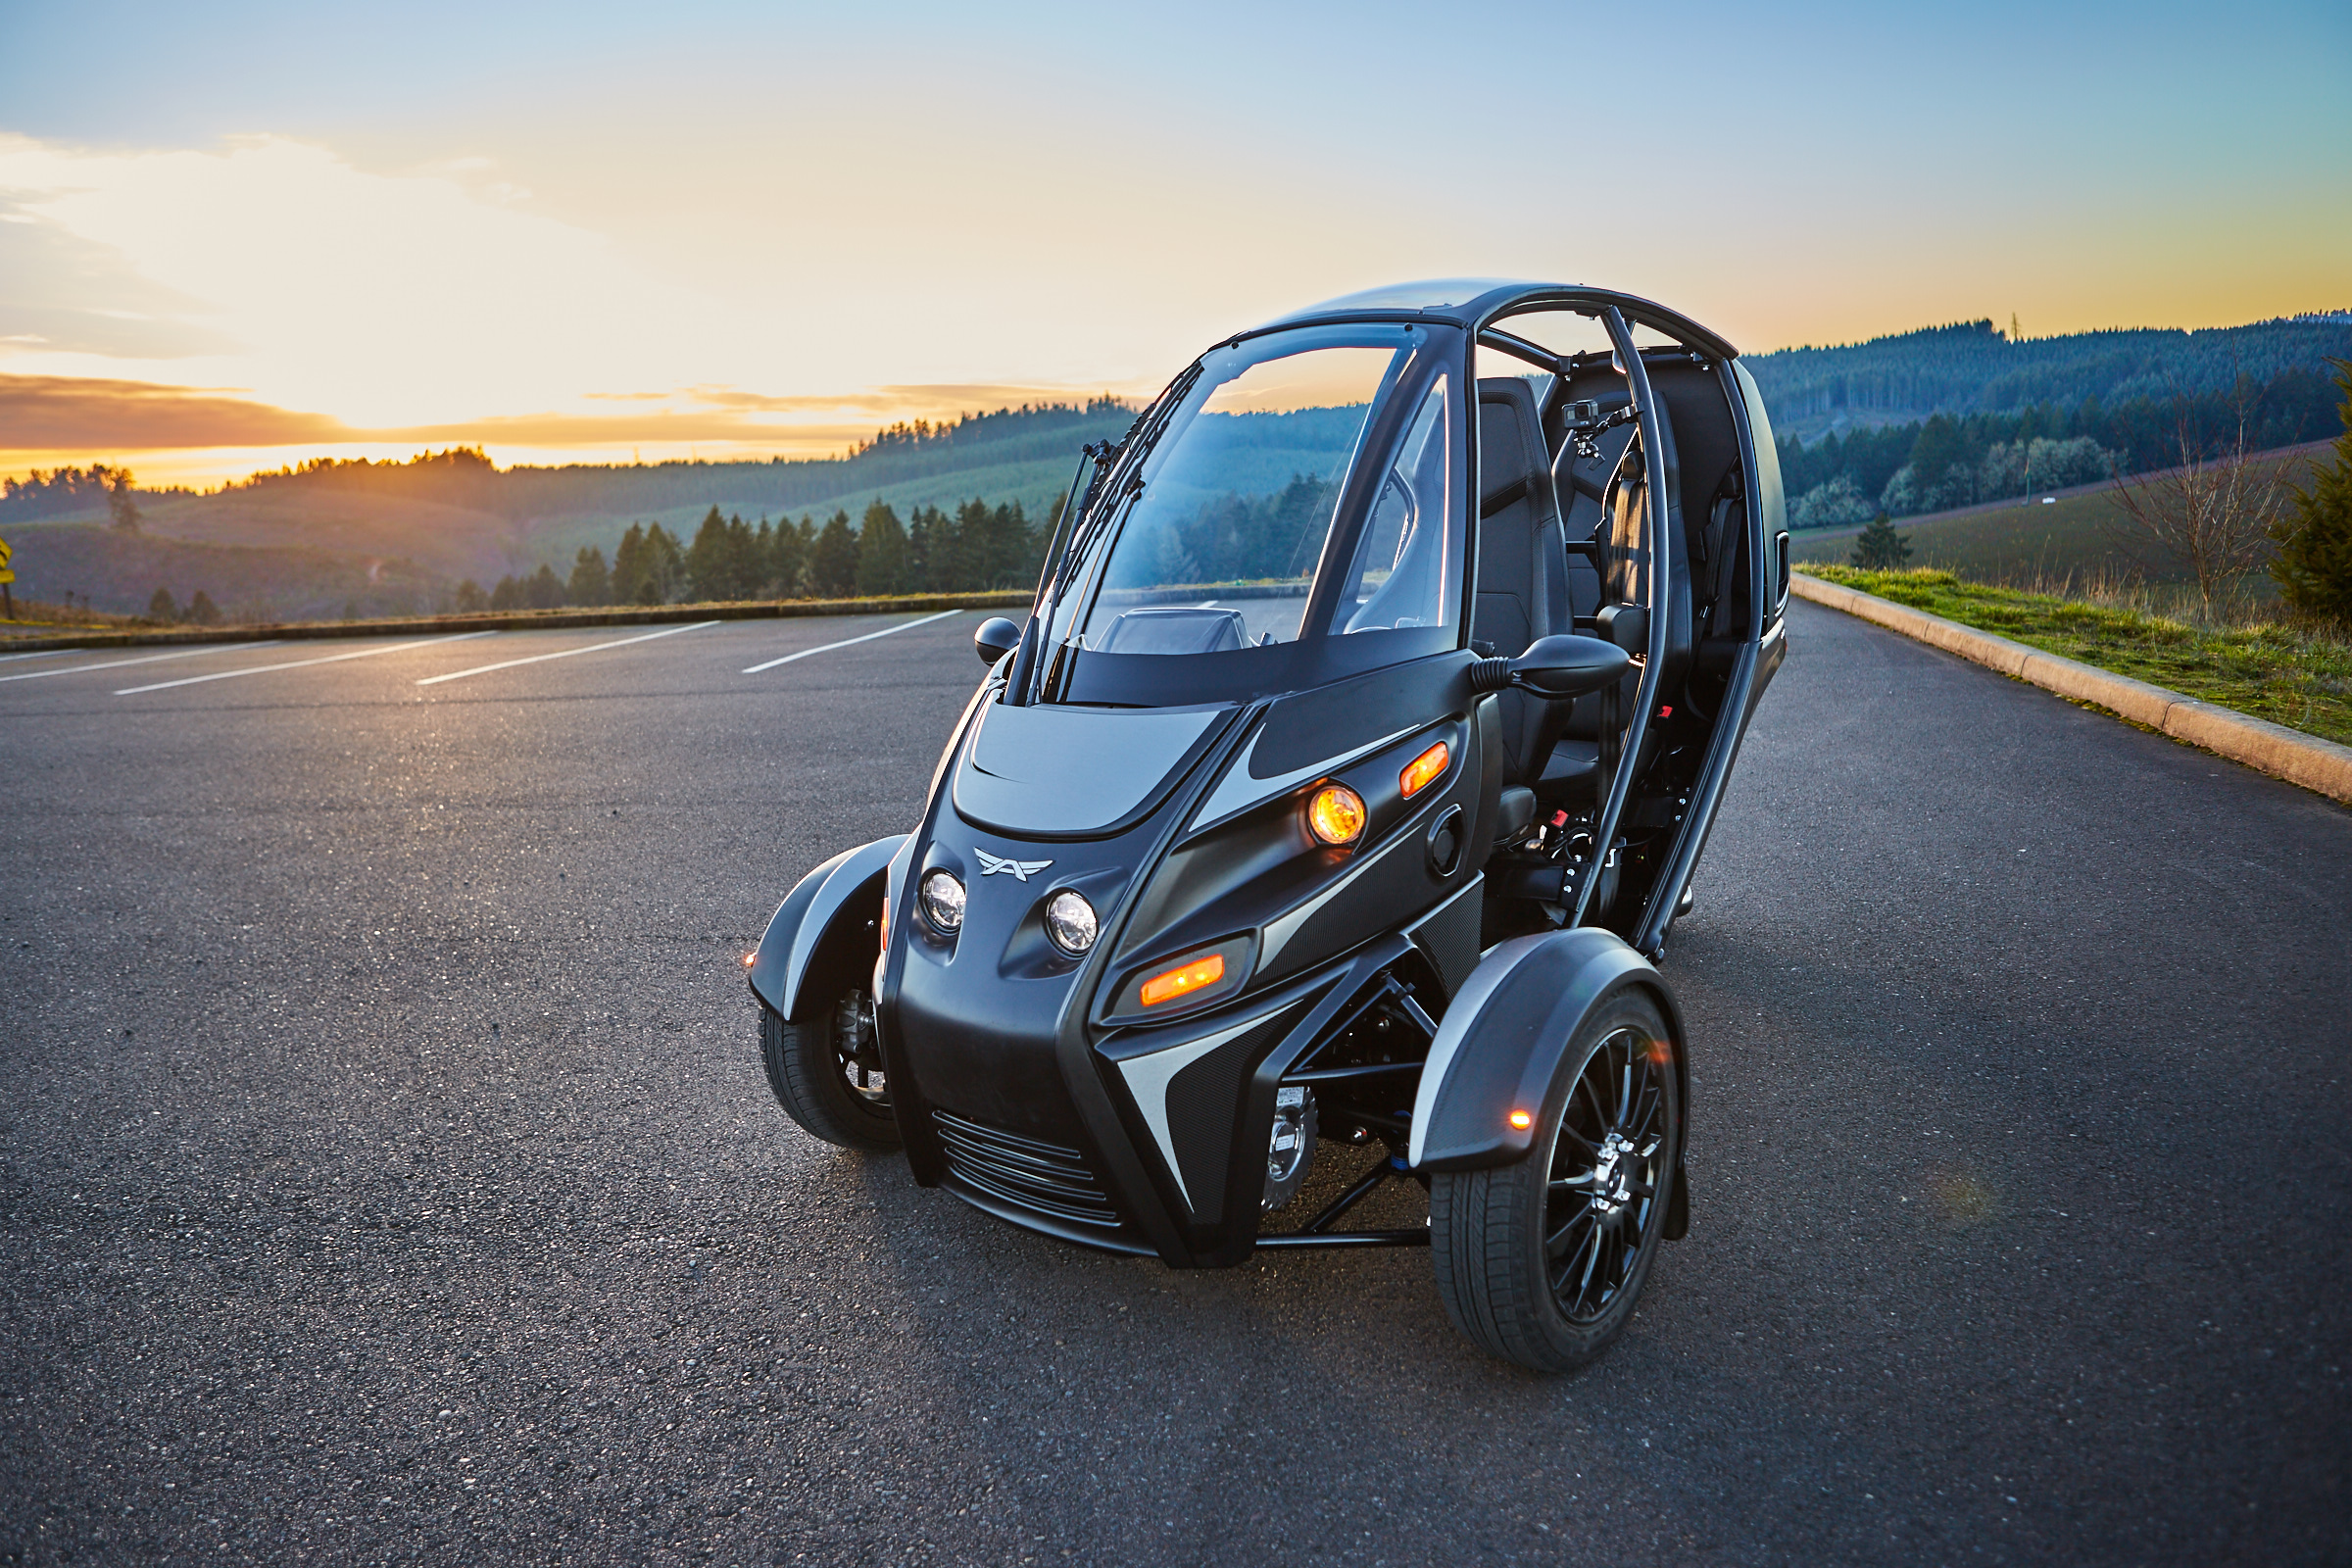 Arcimoto opens retail sales for electric 'Fun Utility Vehicle', sets goal for $11,900 price